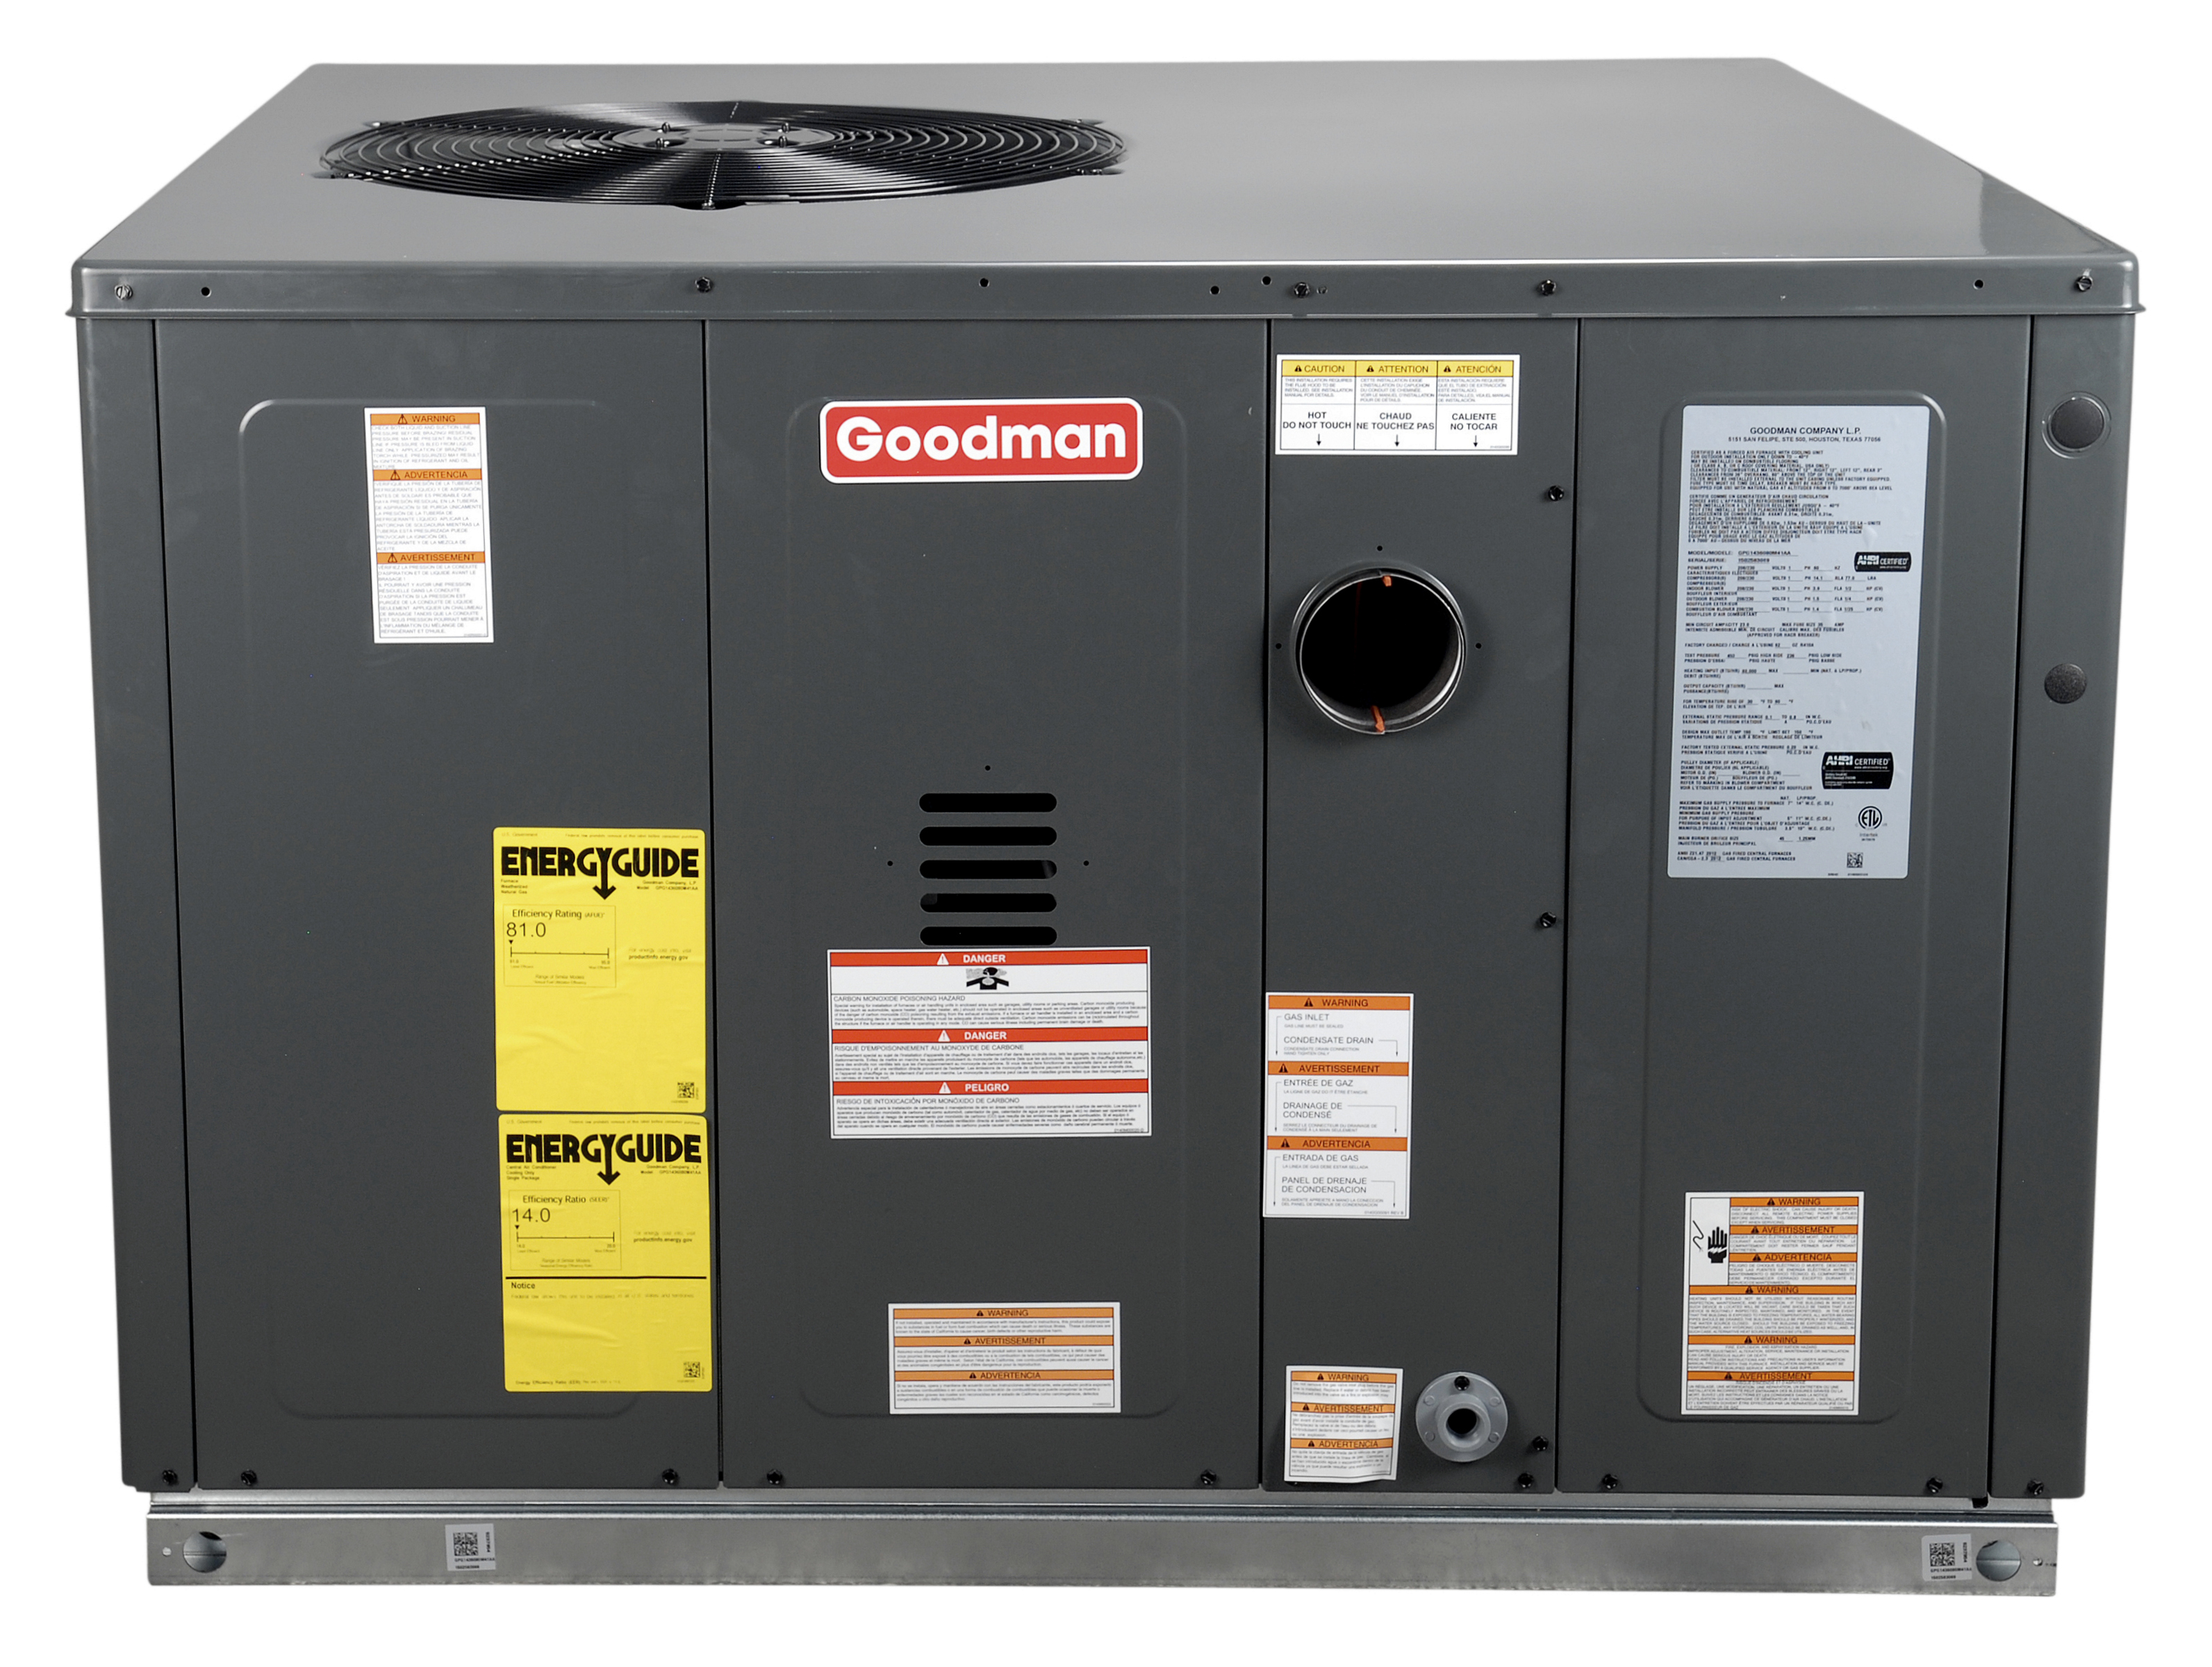 Goodman Gpg1436080m41 3 Ton Cooling 80 000 Btu Heating 14 Seer Furnace Wiring Diagram For Gas Units 80000 Heating14 Package Unit R 410a Refrigerant Multi Positional